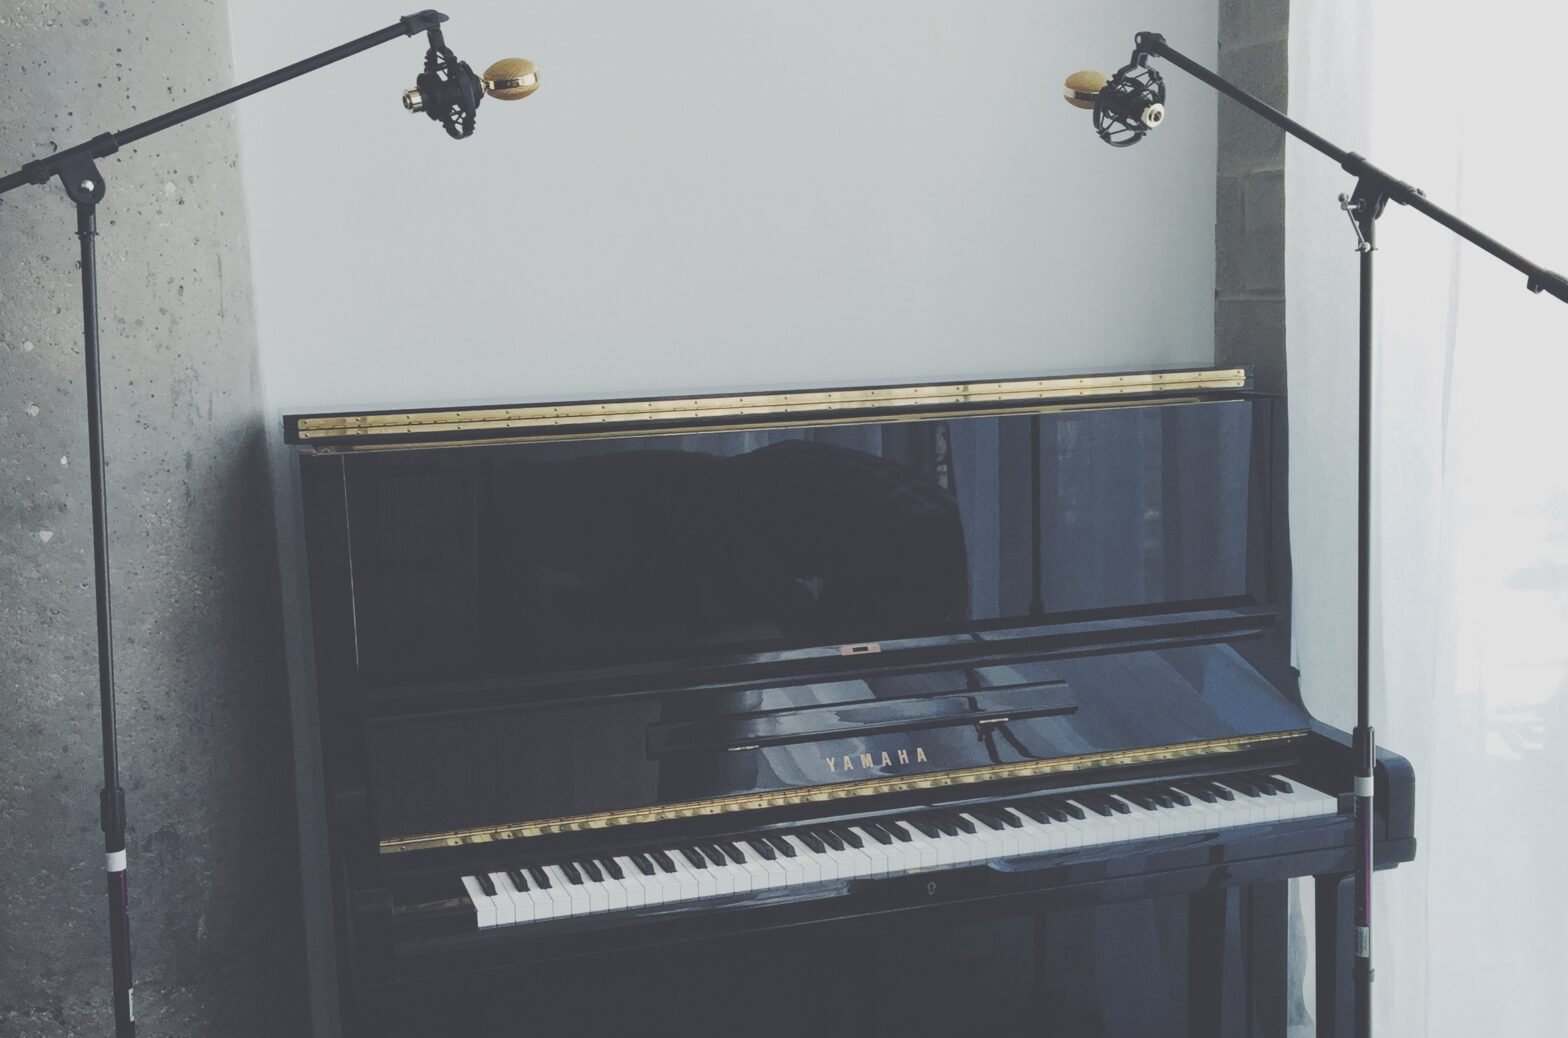 A black upright piano with two microphones sits in a gray room.